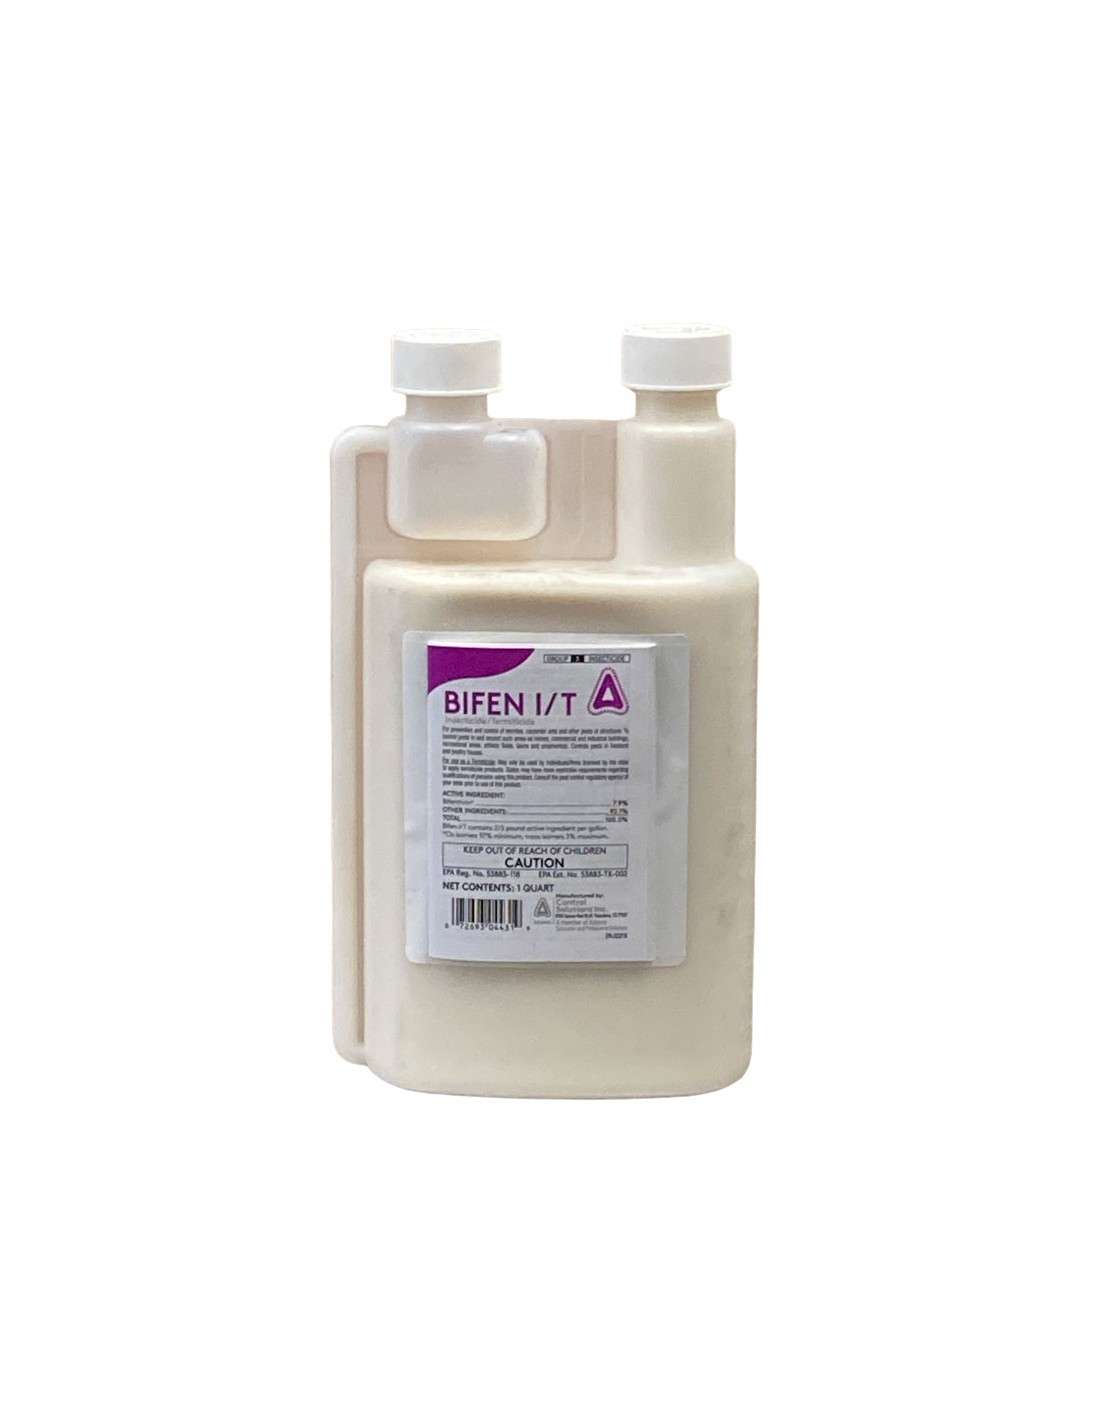 is Bifen used to kill carpenter ants?